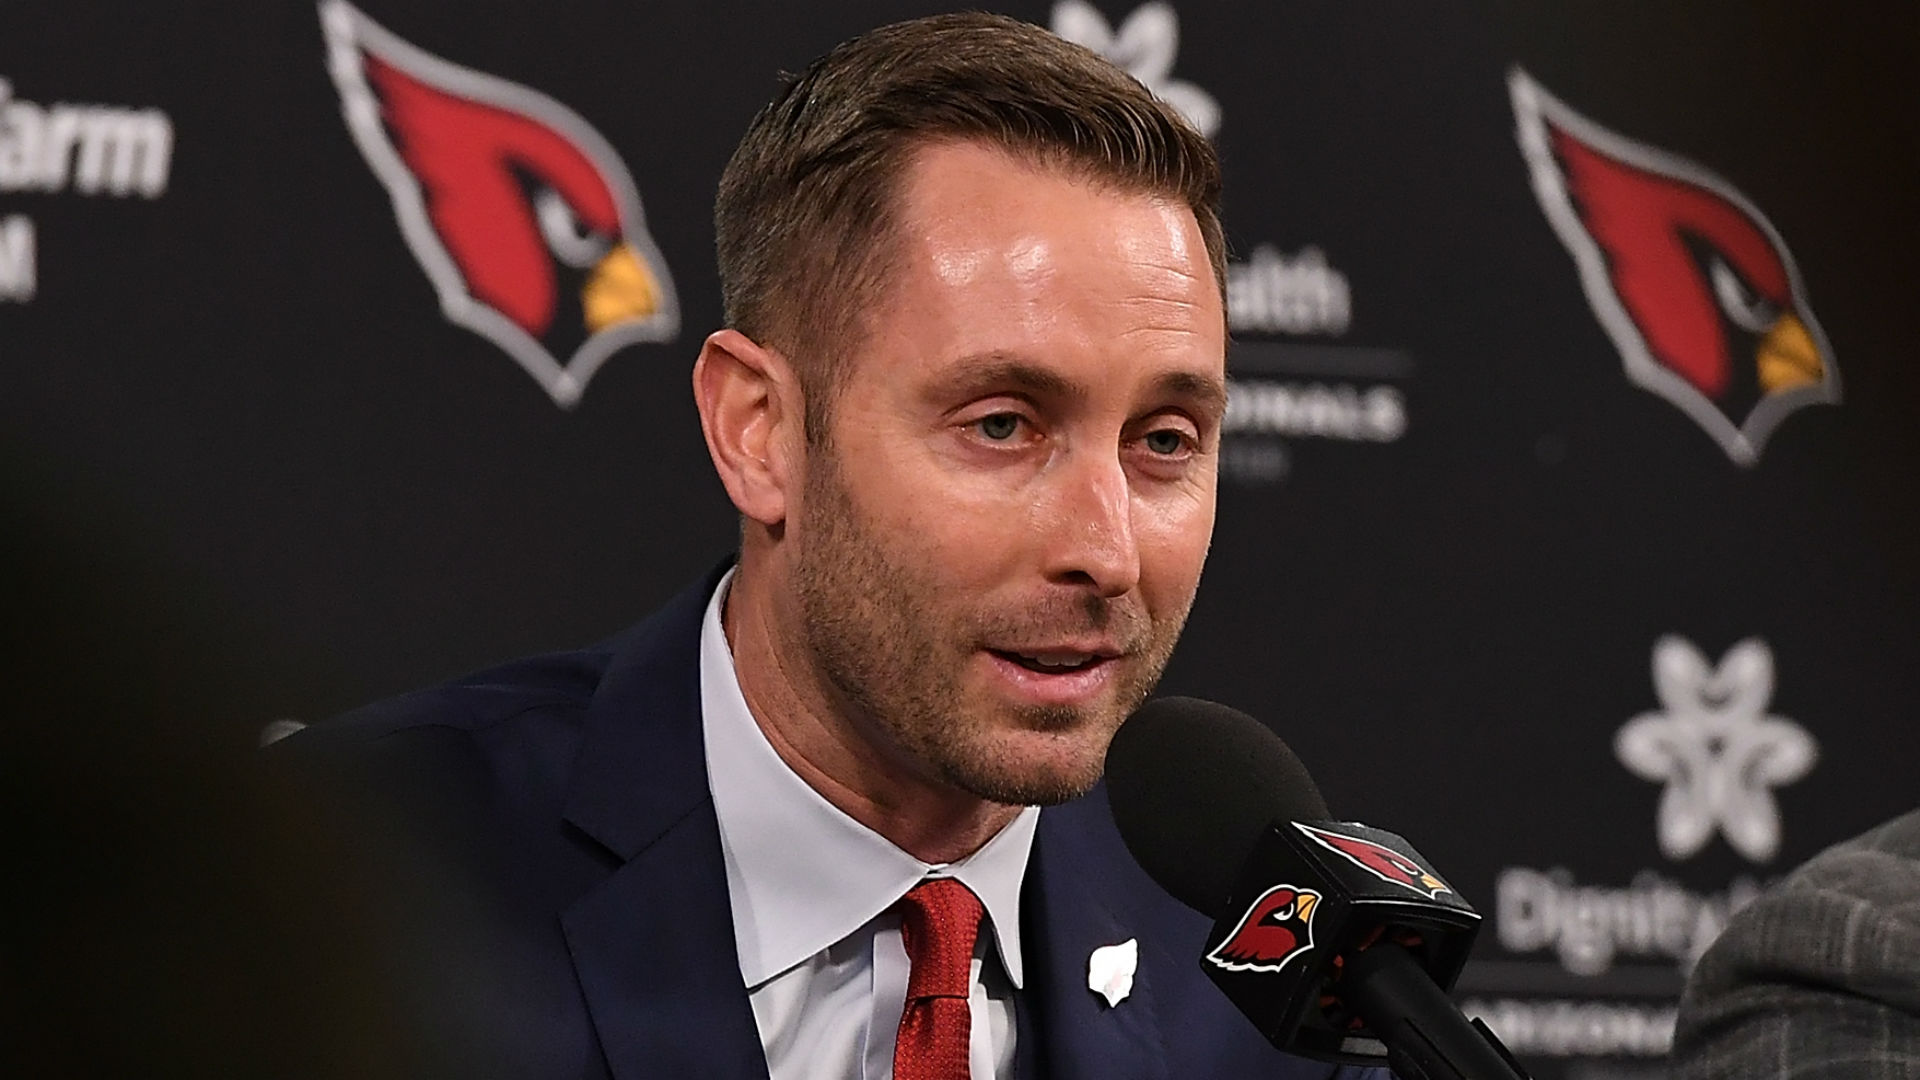 Cardinals, officials in 'good place' with talks on Kyler Murray snap claps, Kliff Kingsbury says